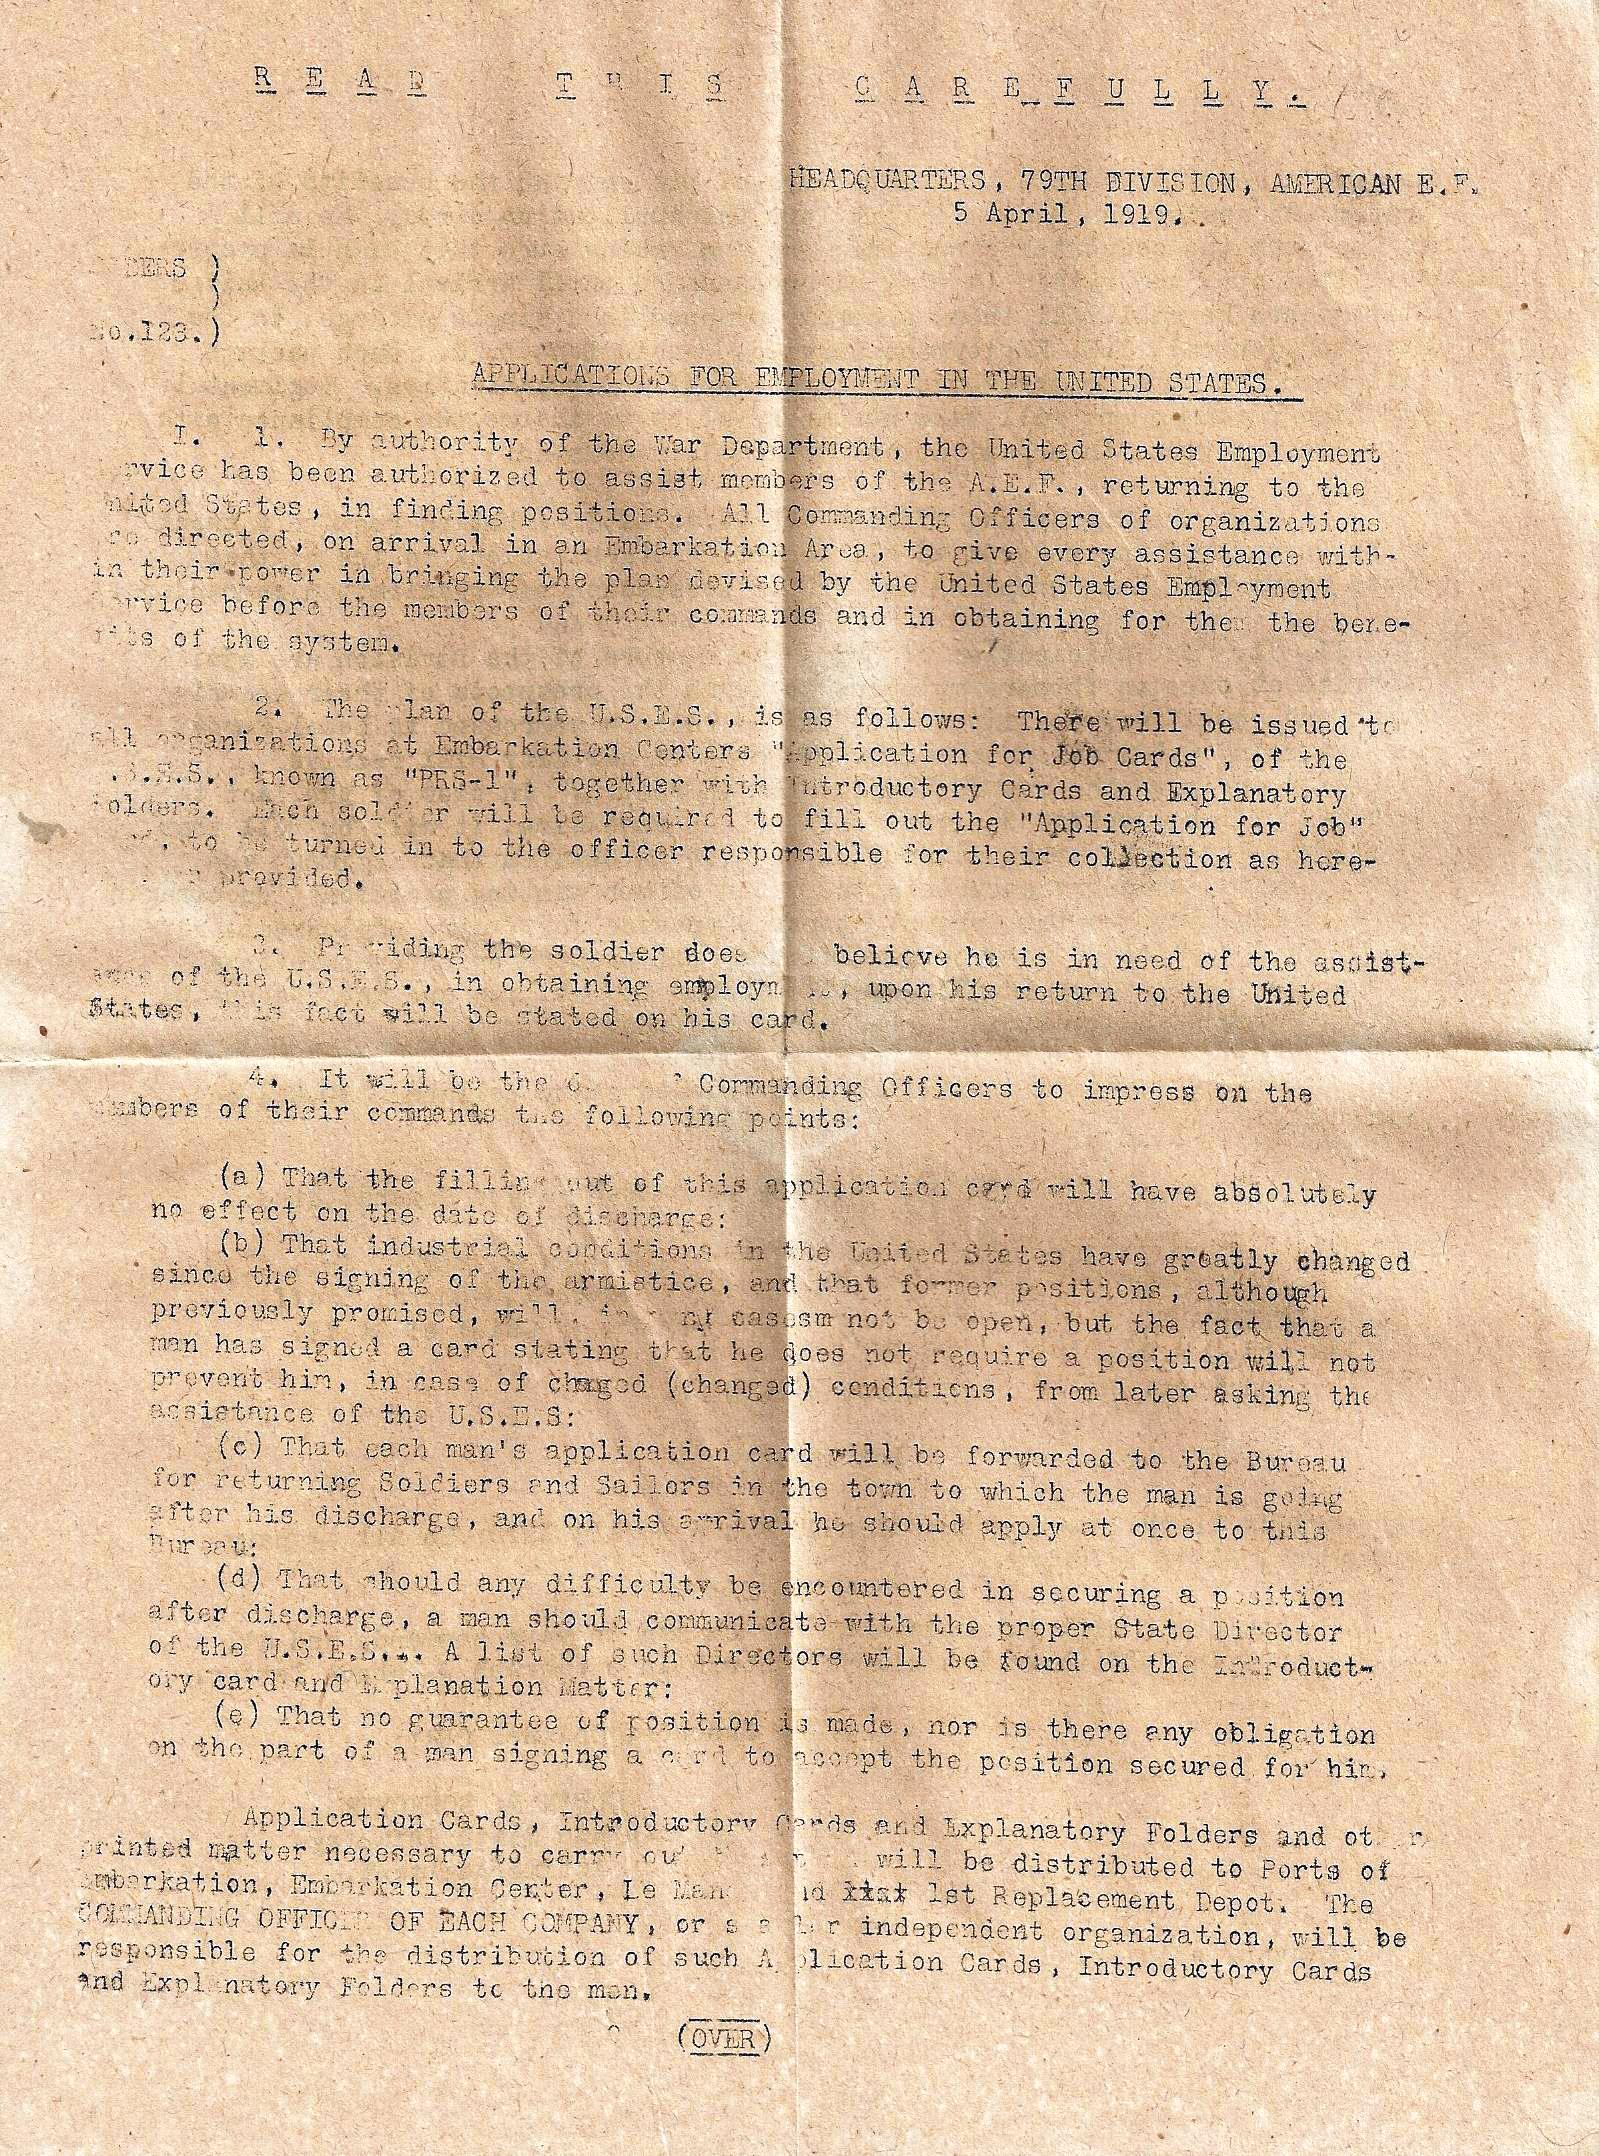 James M. Draper - Machine Gun Company - 314th Infantry 79th Division A.E.F. - Application for Employment - 1 of 2